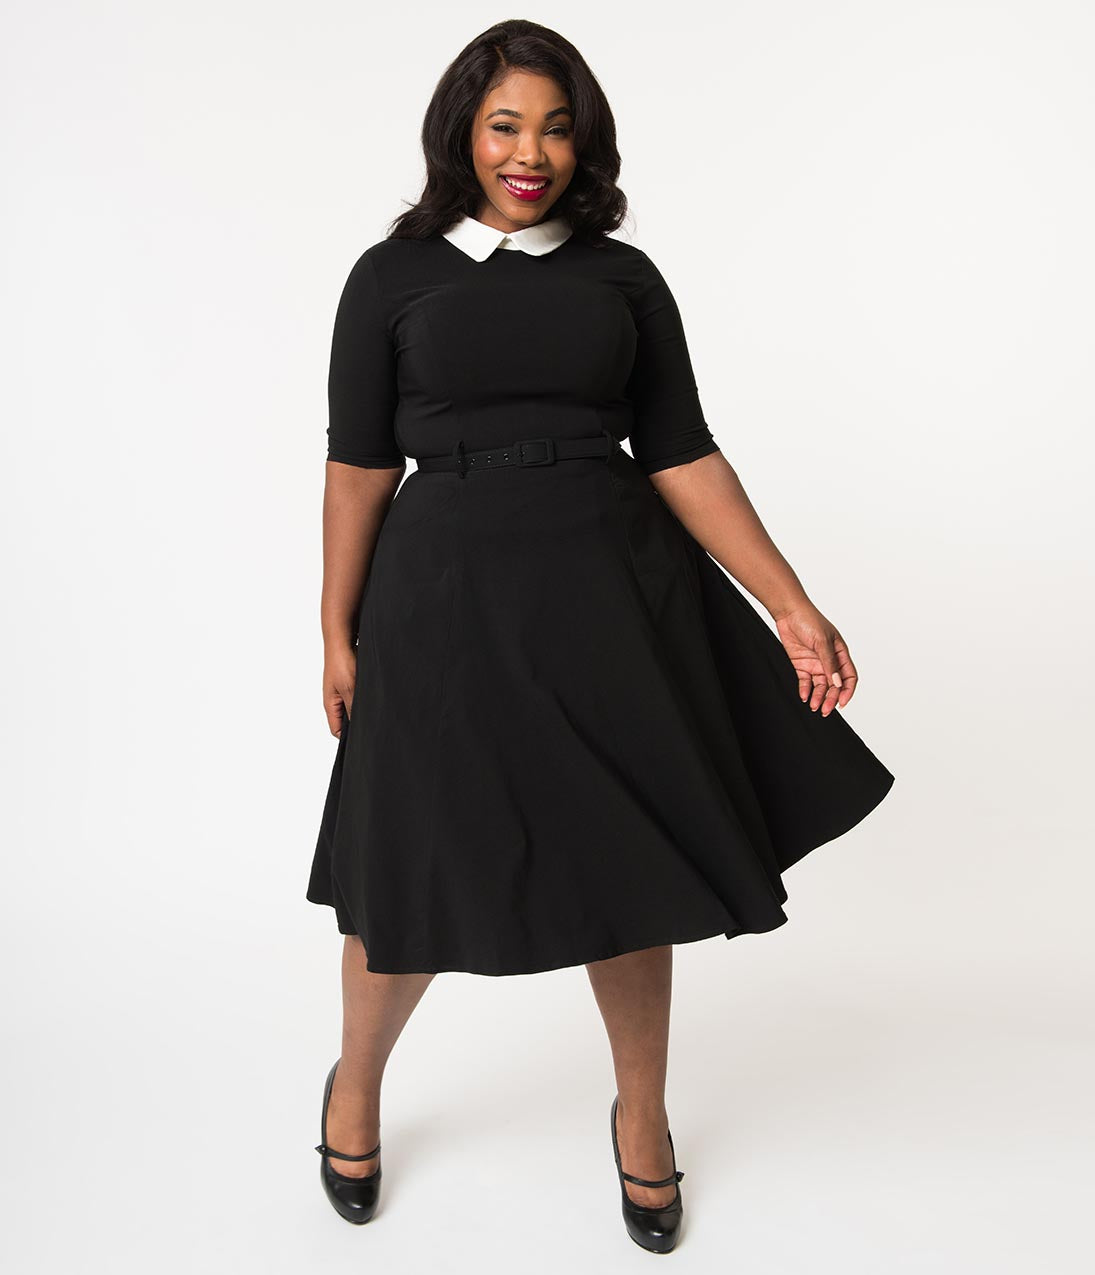 1950s Plus Size Dresses, Clothing and Costumes Collectif Plus Size Black Stretch  Ivory Collar Winona Swing Dress $68.00 AT vintagedancer.com